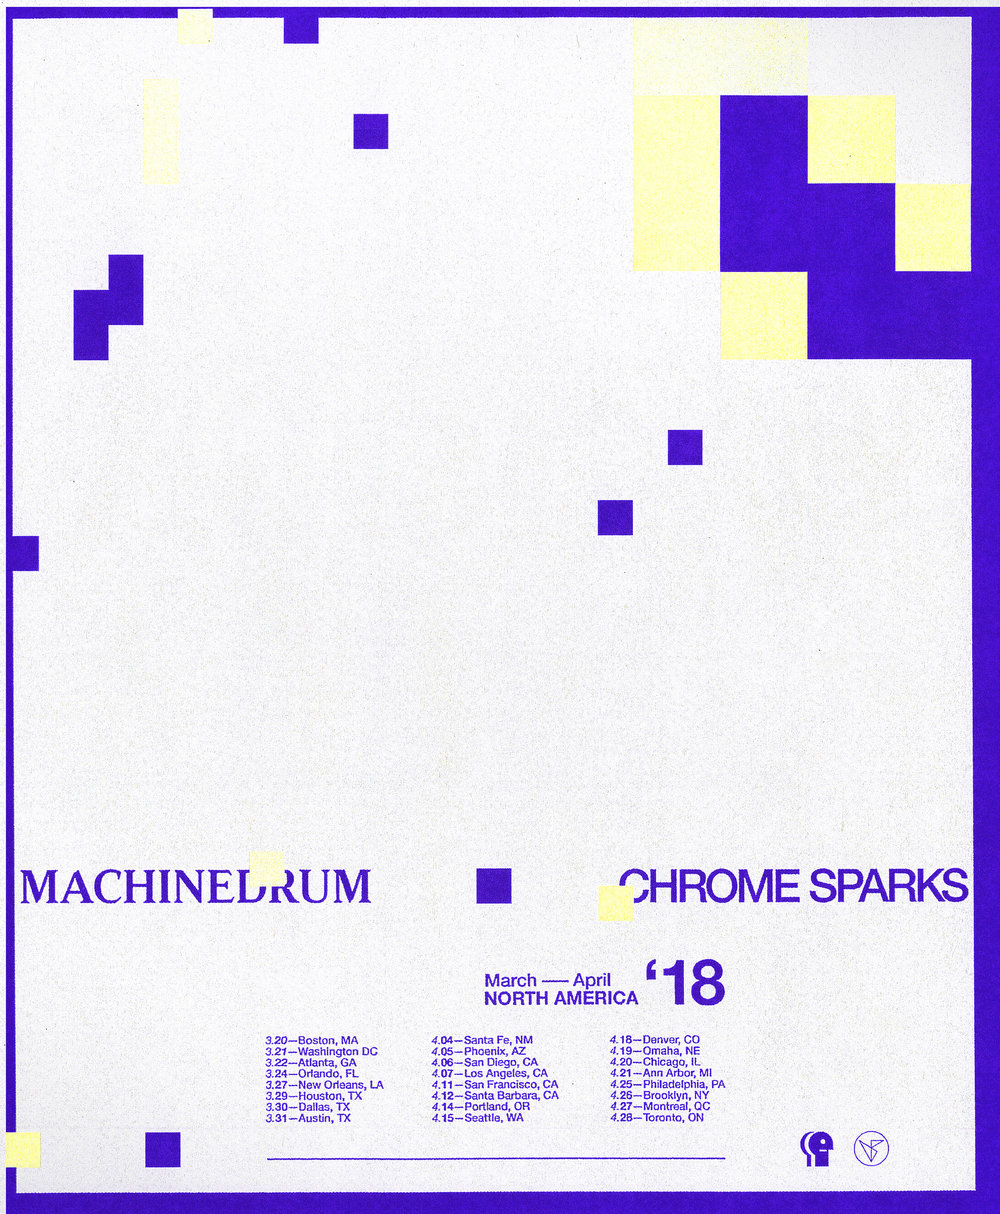 machinedrum-chrome-sparks-na-tour-light-blank-web_2500.jpg